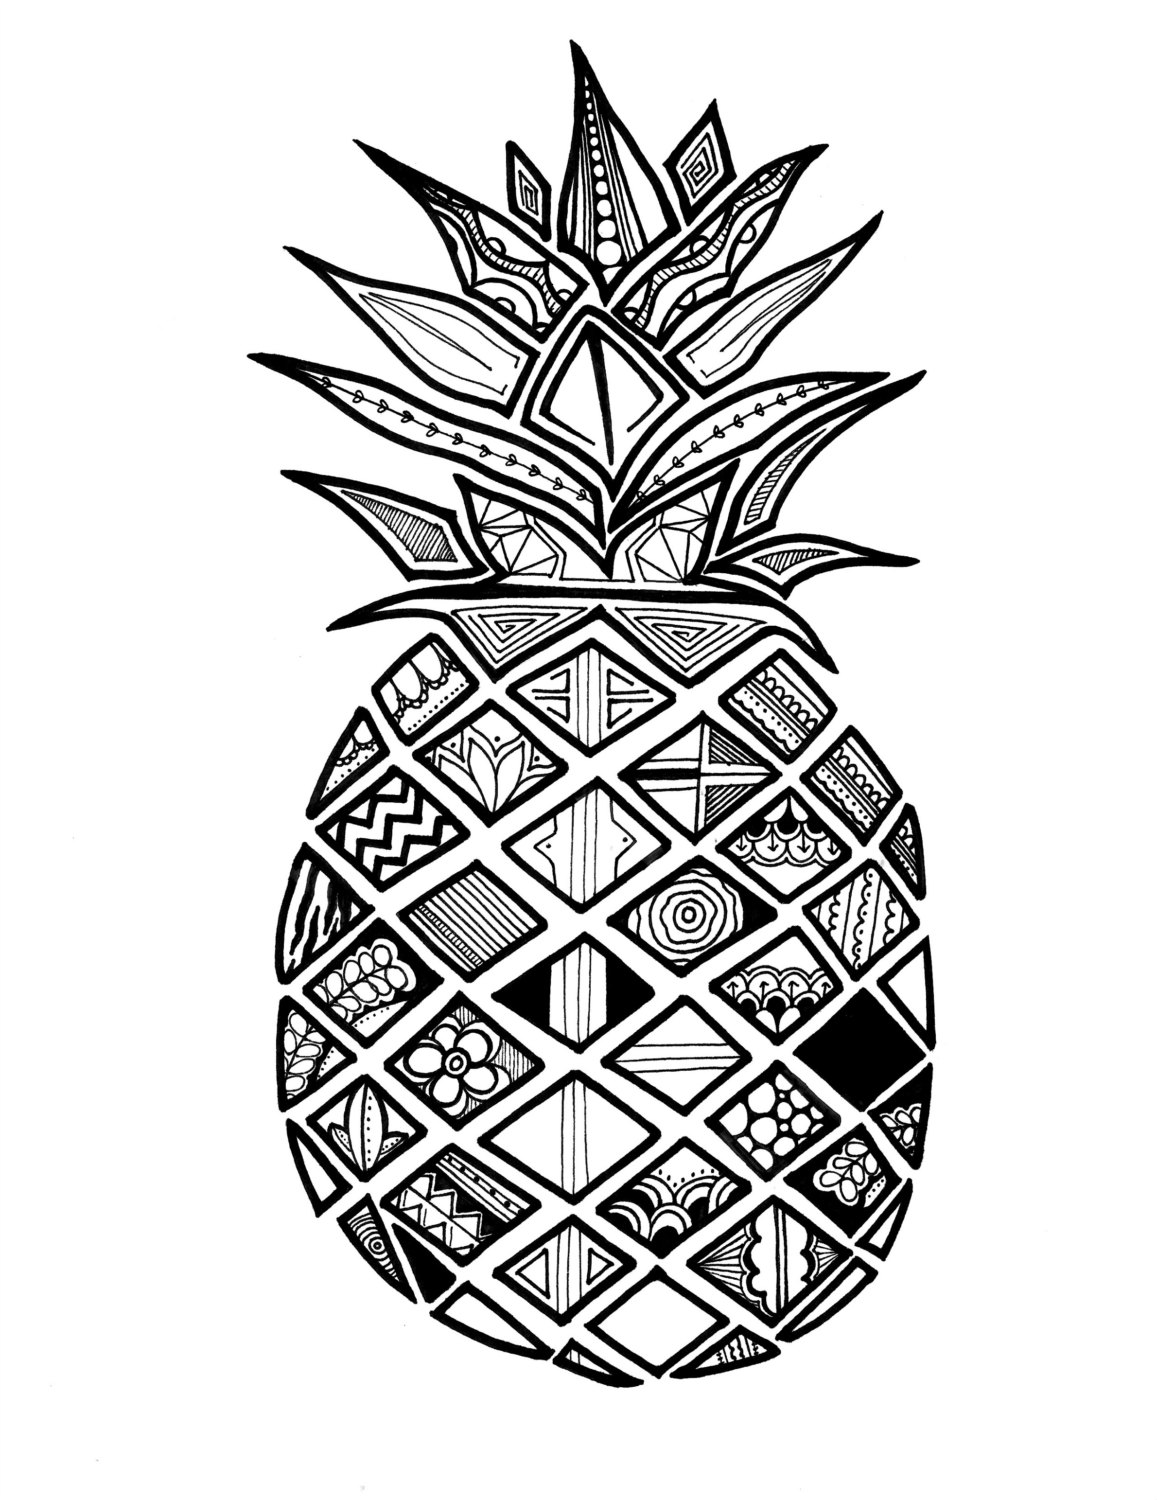 pineapple drawing pdf of pineapple jujube print illustration has a by drawing pineapple